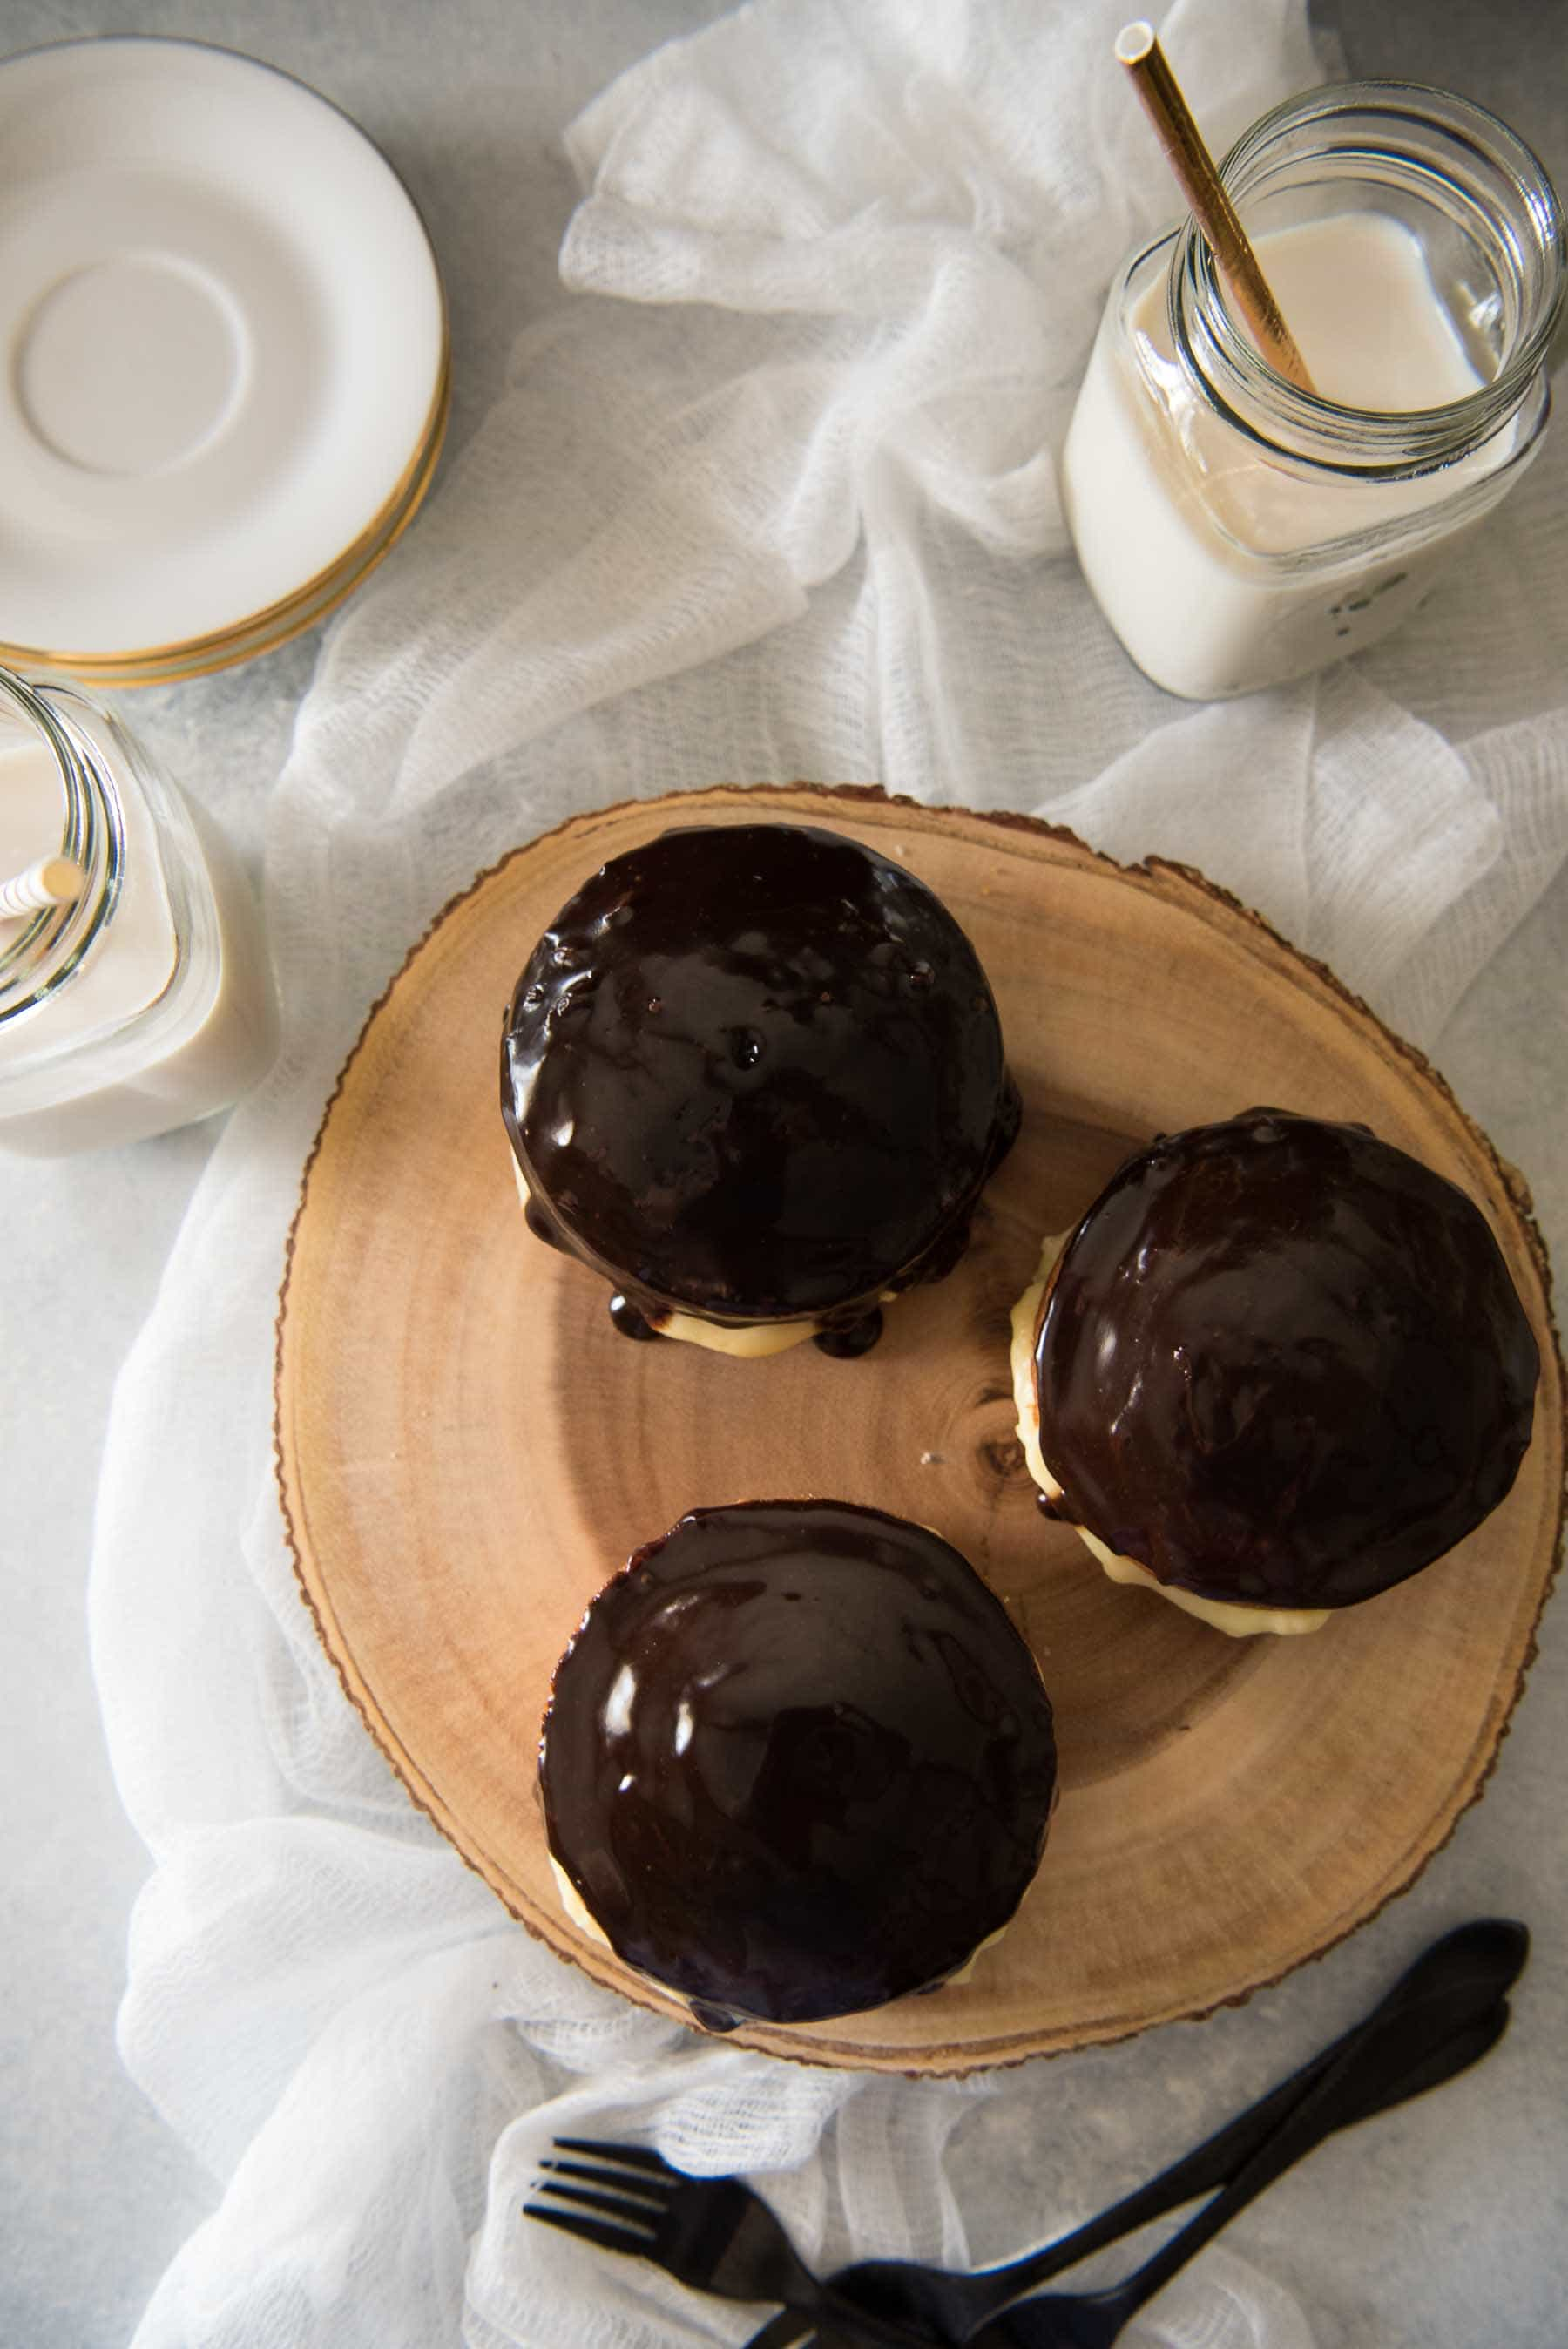 There's nothing quite like a classic Boston Cream Pie...since it's actually a cake! Rich, thick pastry cream is sandwiched between two layers of buttery yellow cake, then topped with a dark chocolate glaze.